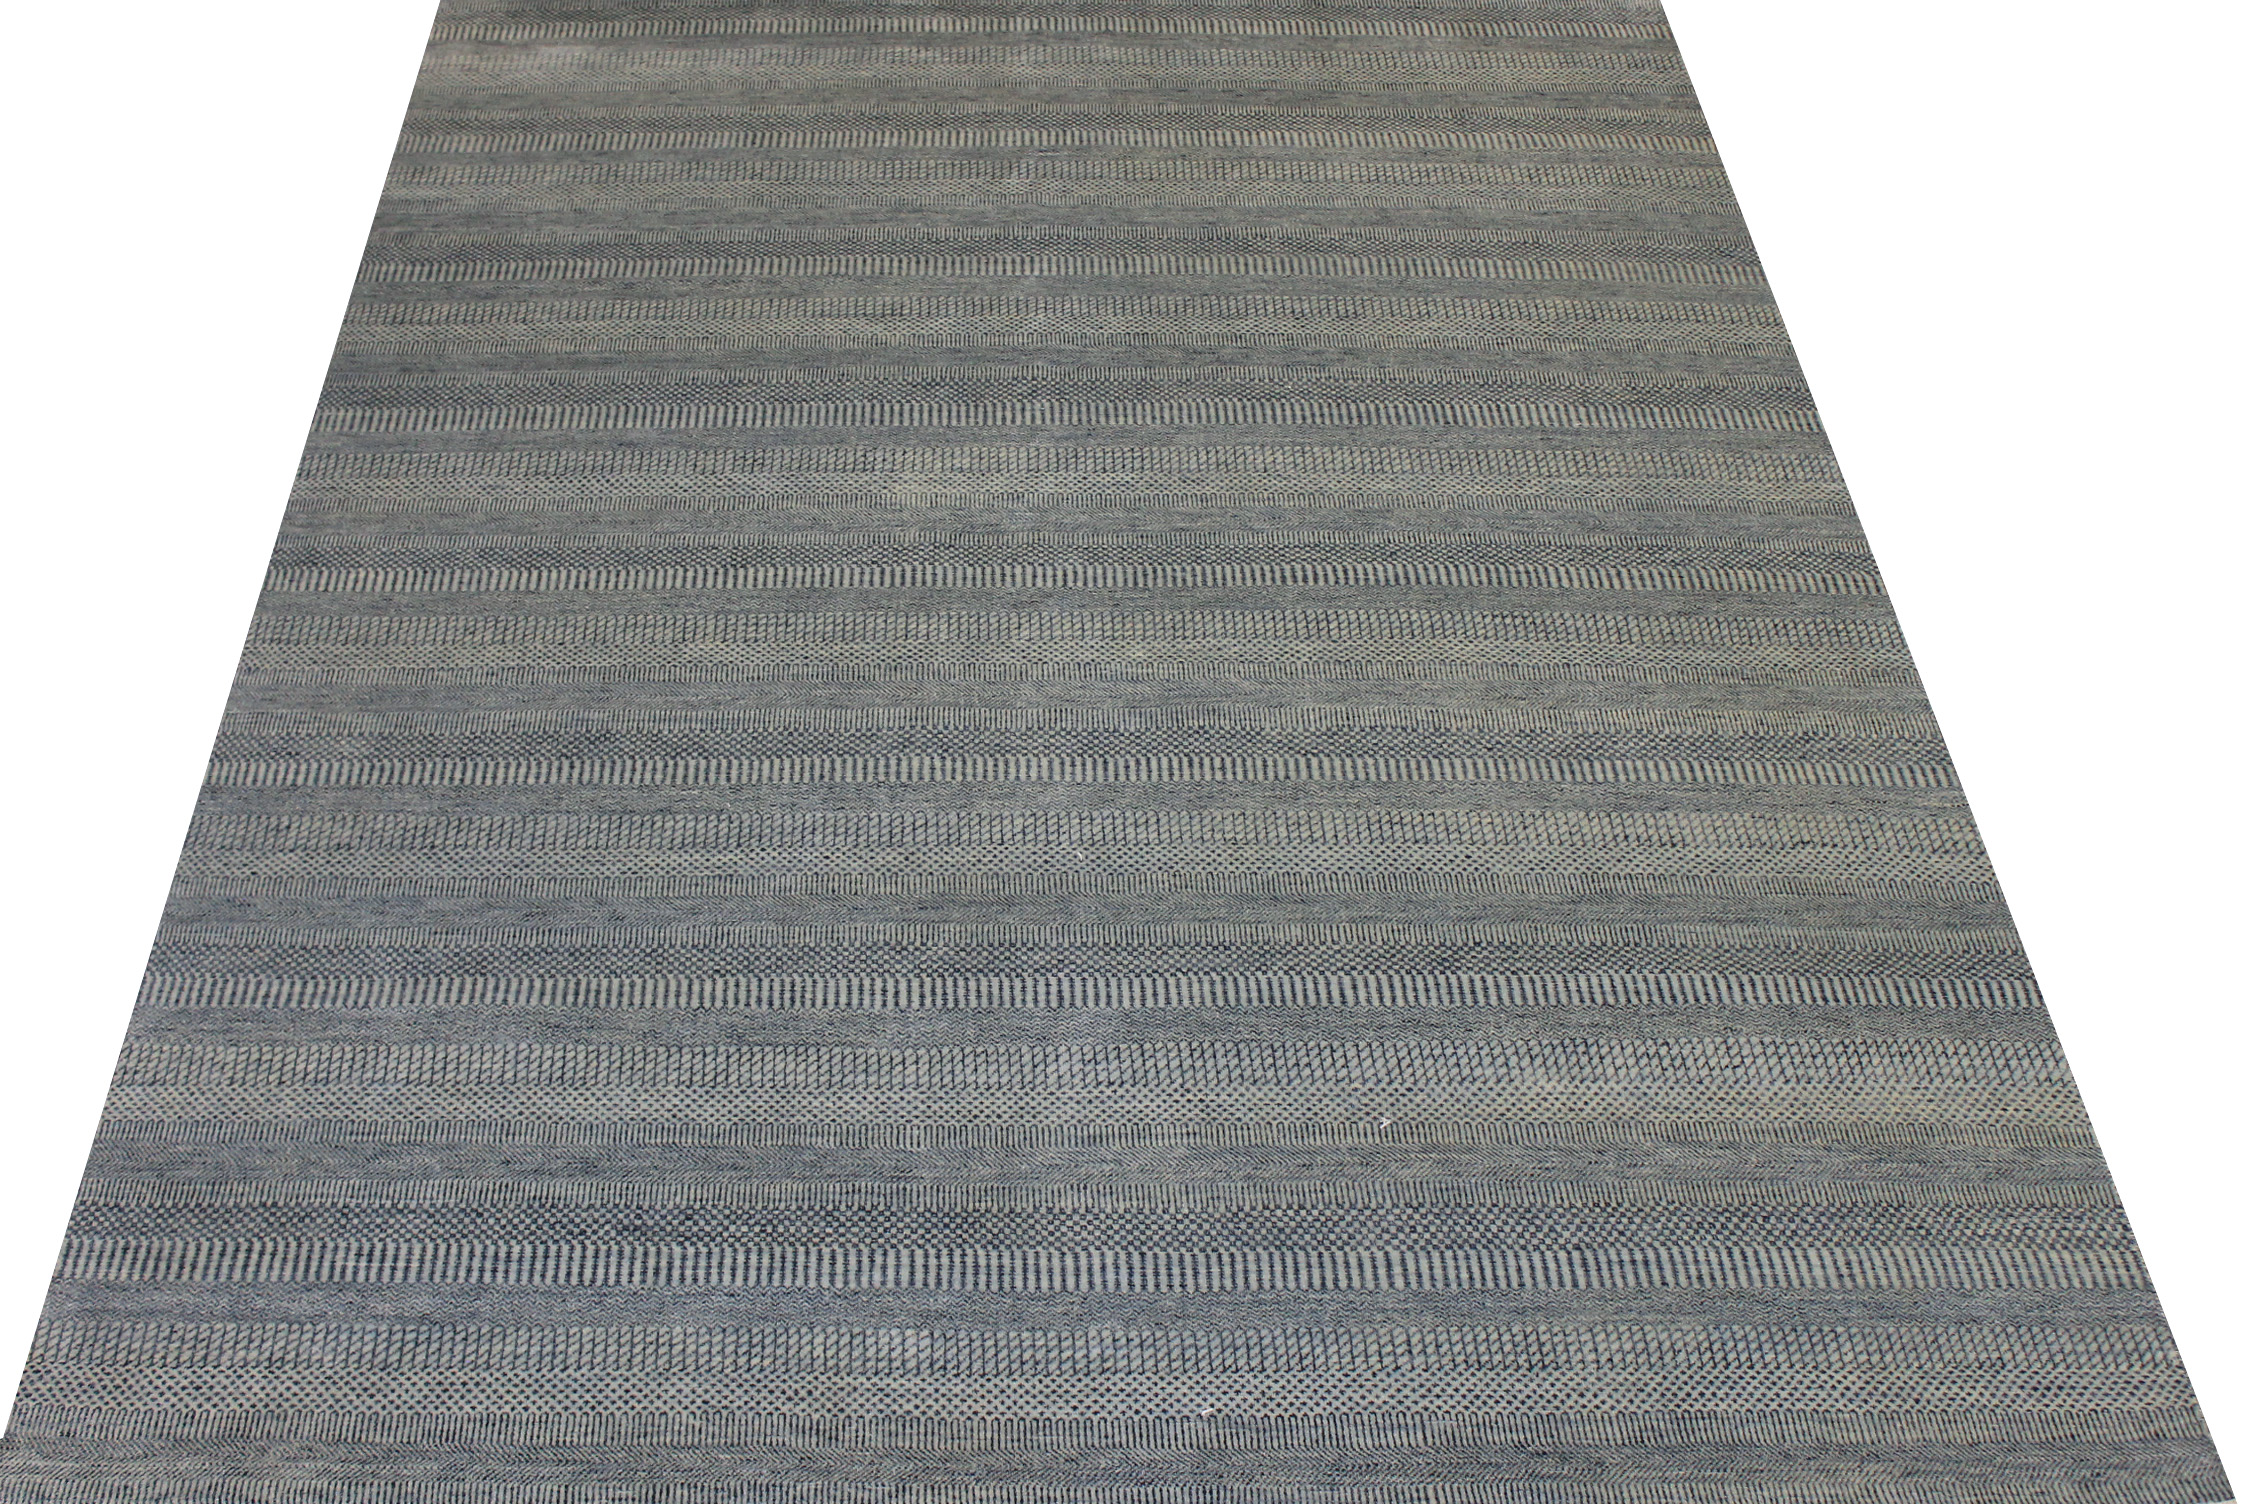 9x12 Casual Hand Knotted Wool & Viscose Area Rug - MR024607